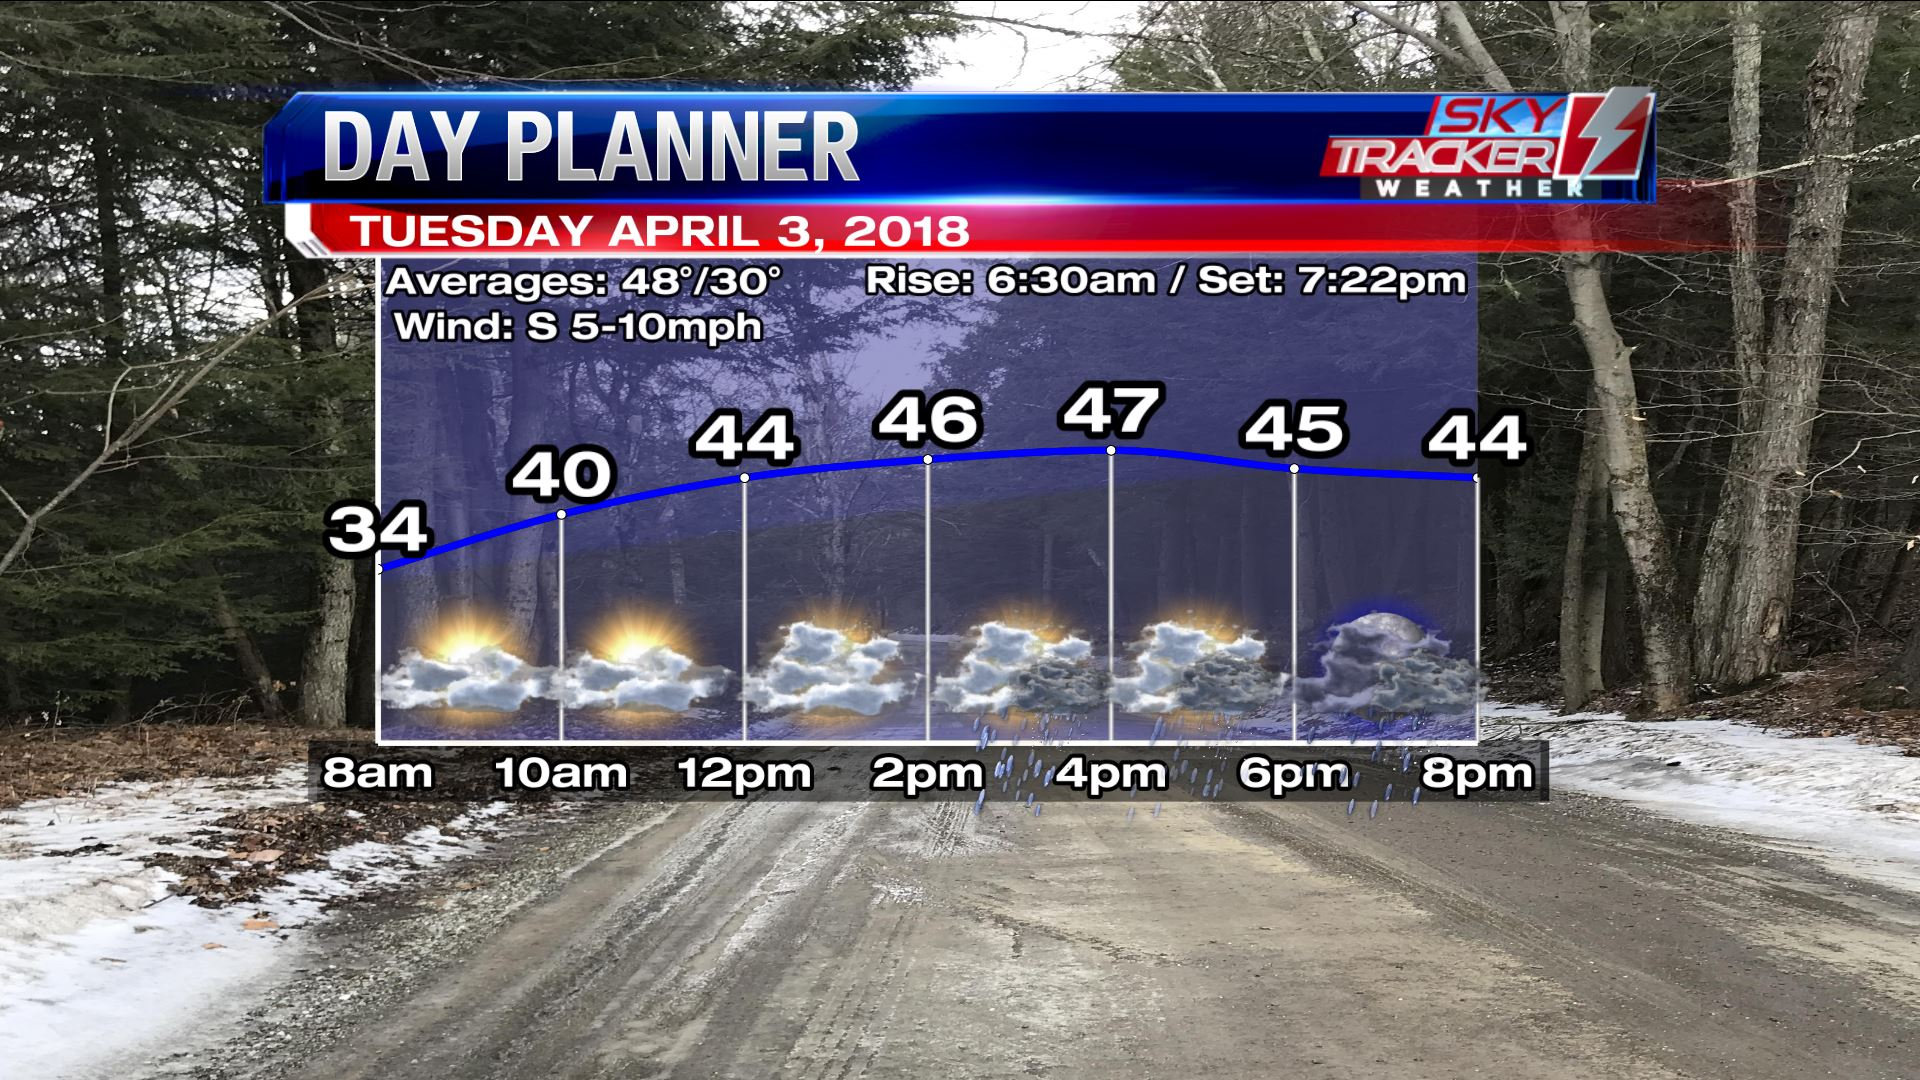 Planner for Tuesday April 3 2018